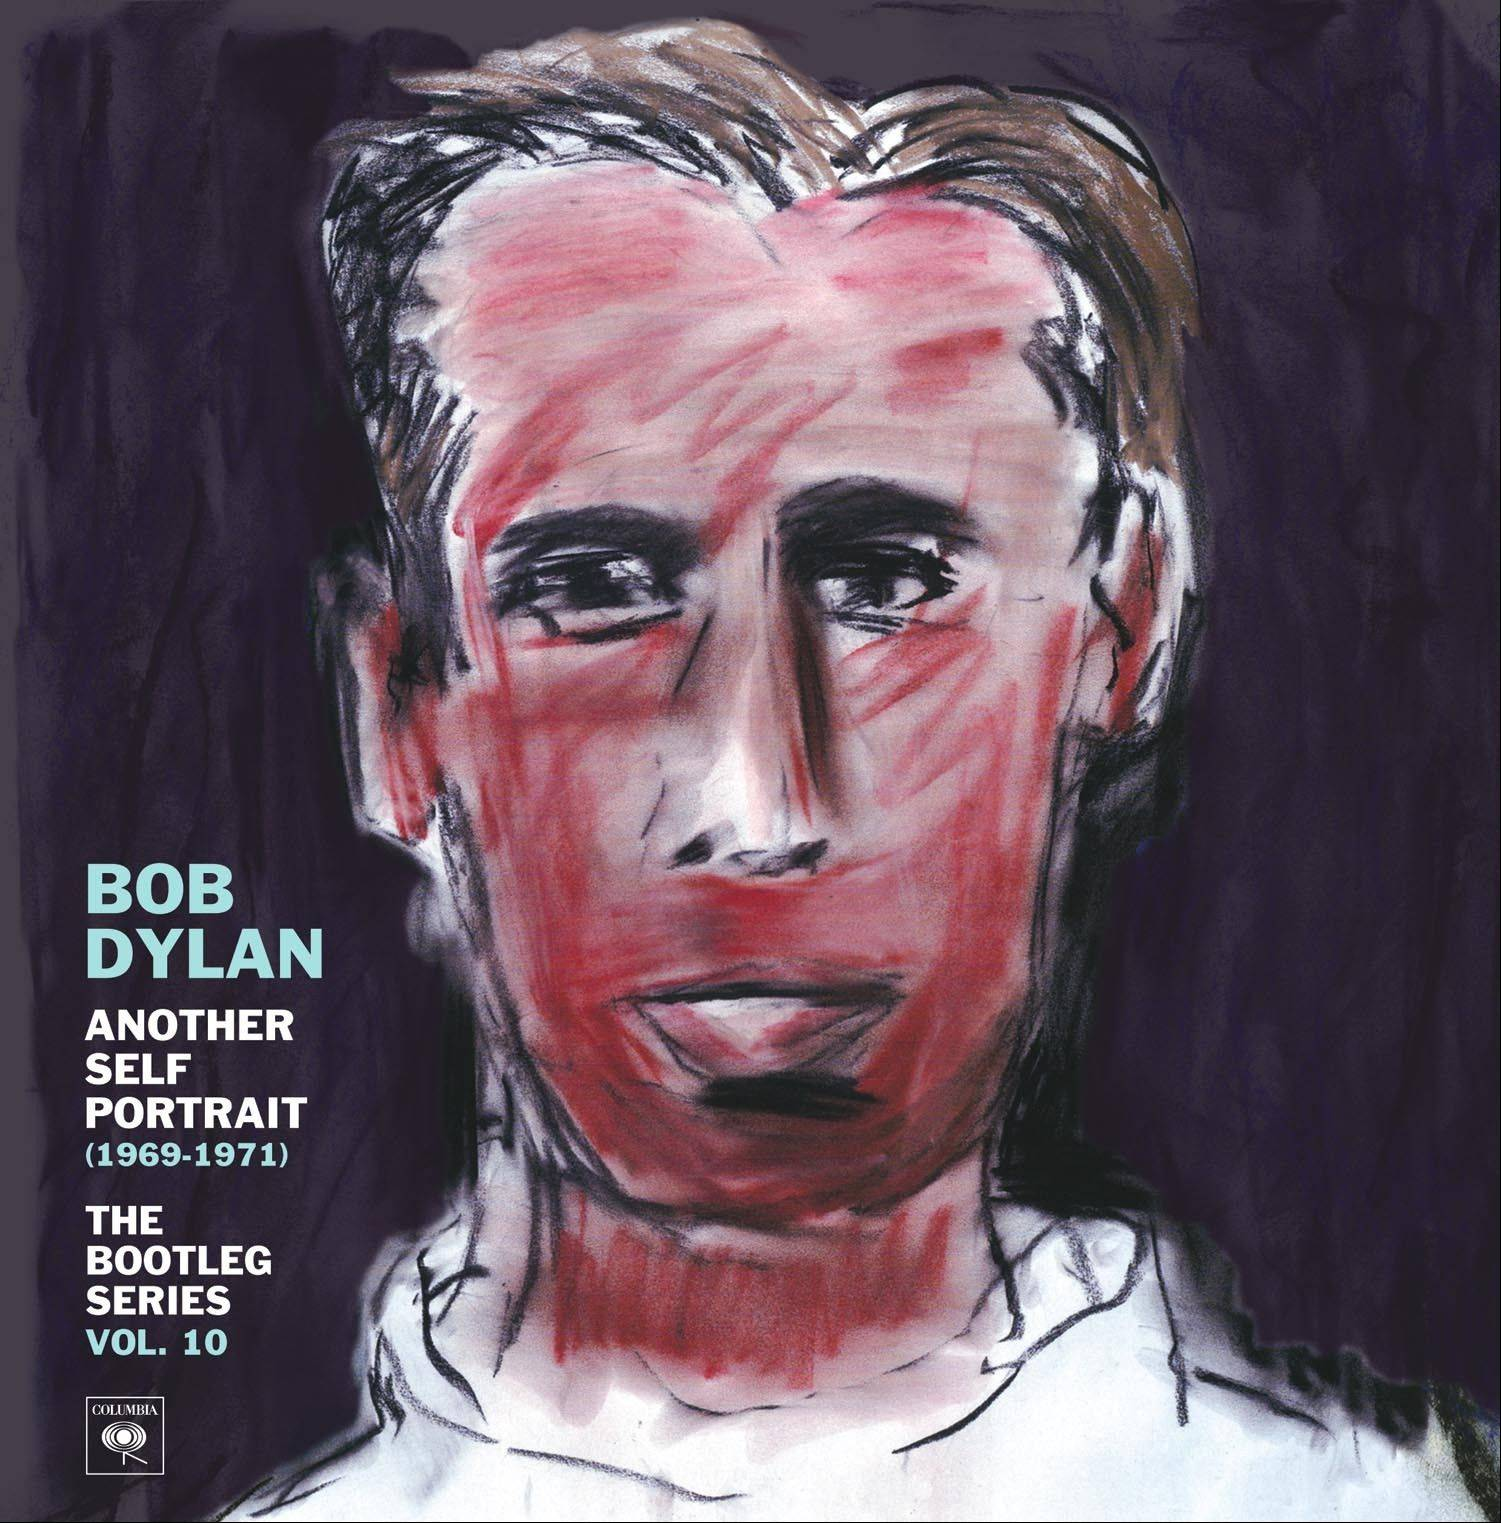 """Another Self Portrait (1969-1971): The Bootleg Series Vol. 10"" by Bob Dylan"